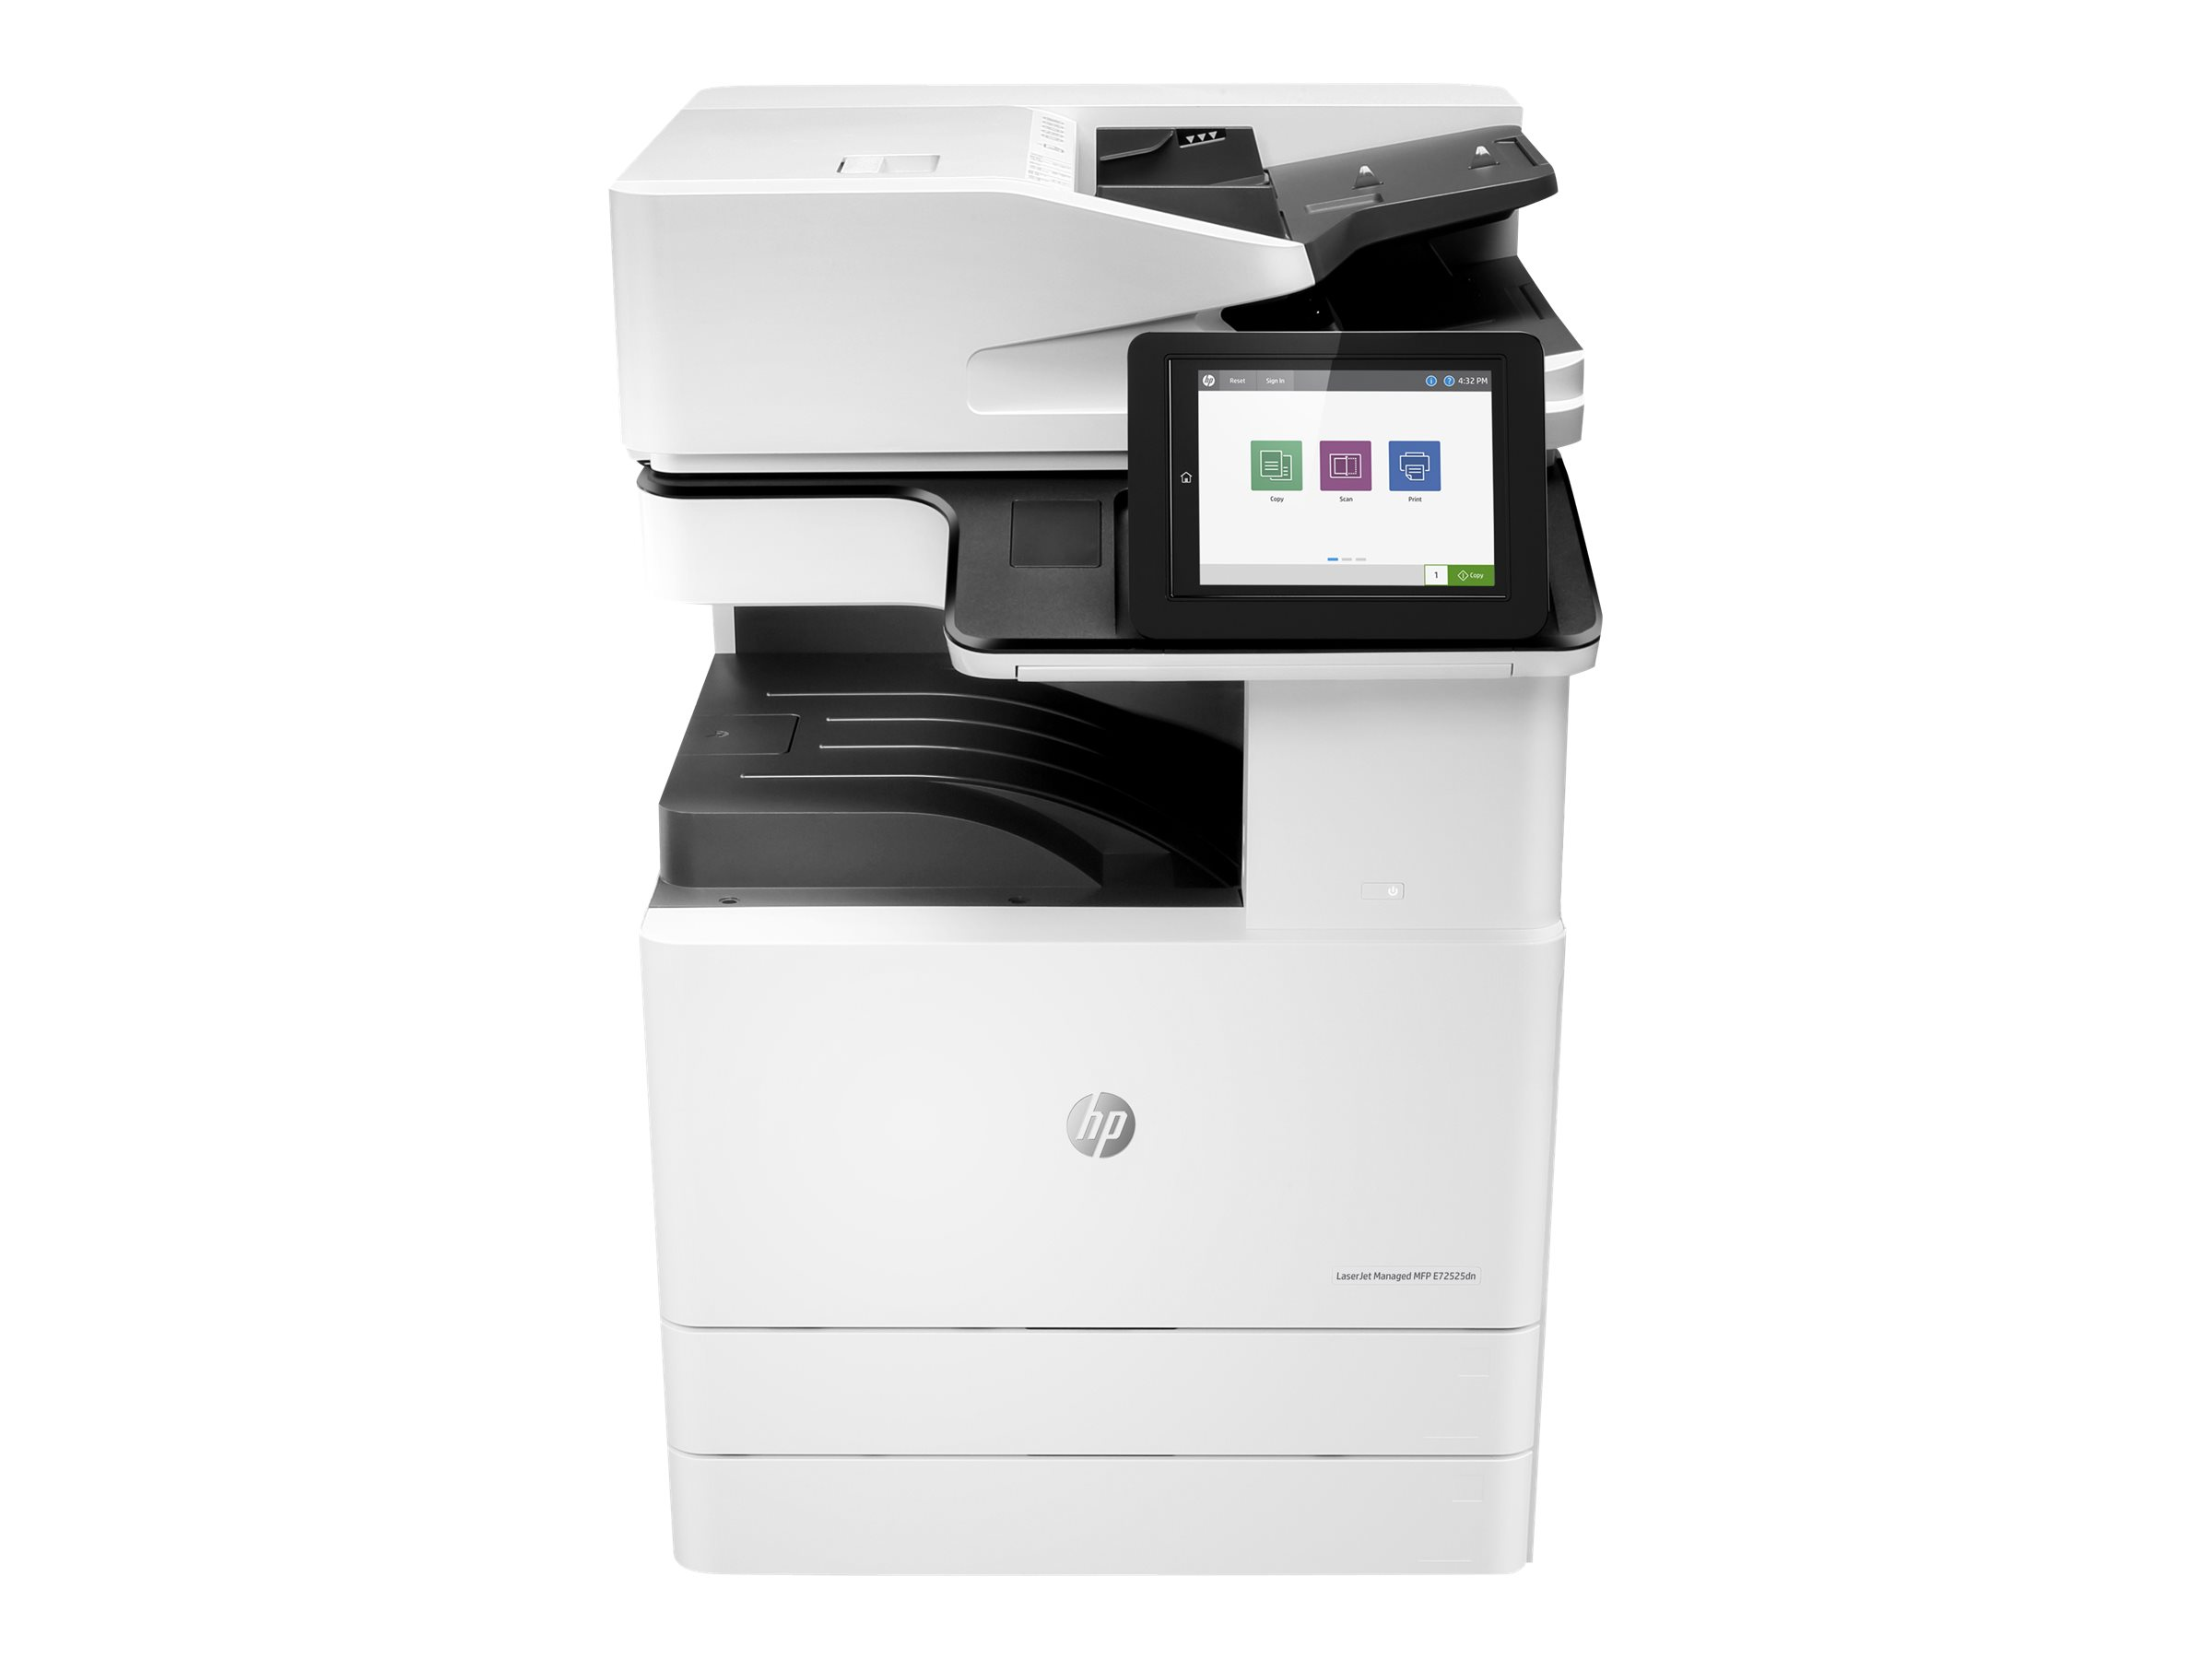 Copieur LaserJet Managed MFP HP E82560dn - vitesse 60ppm vue avant